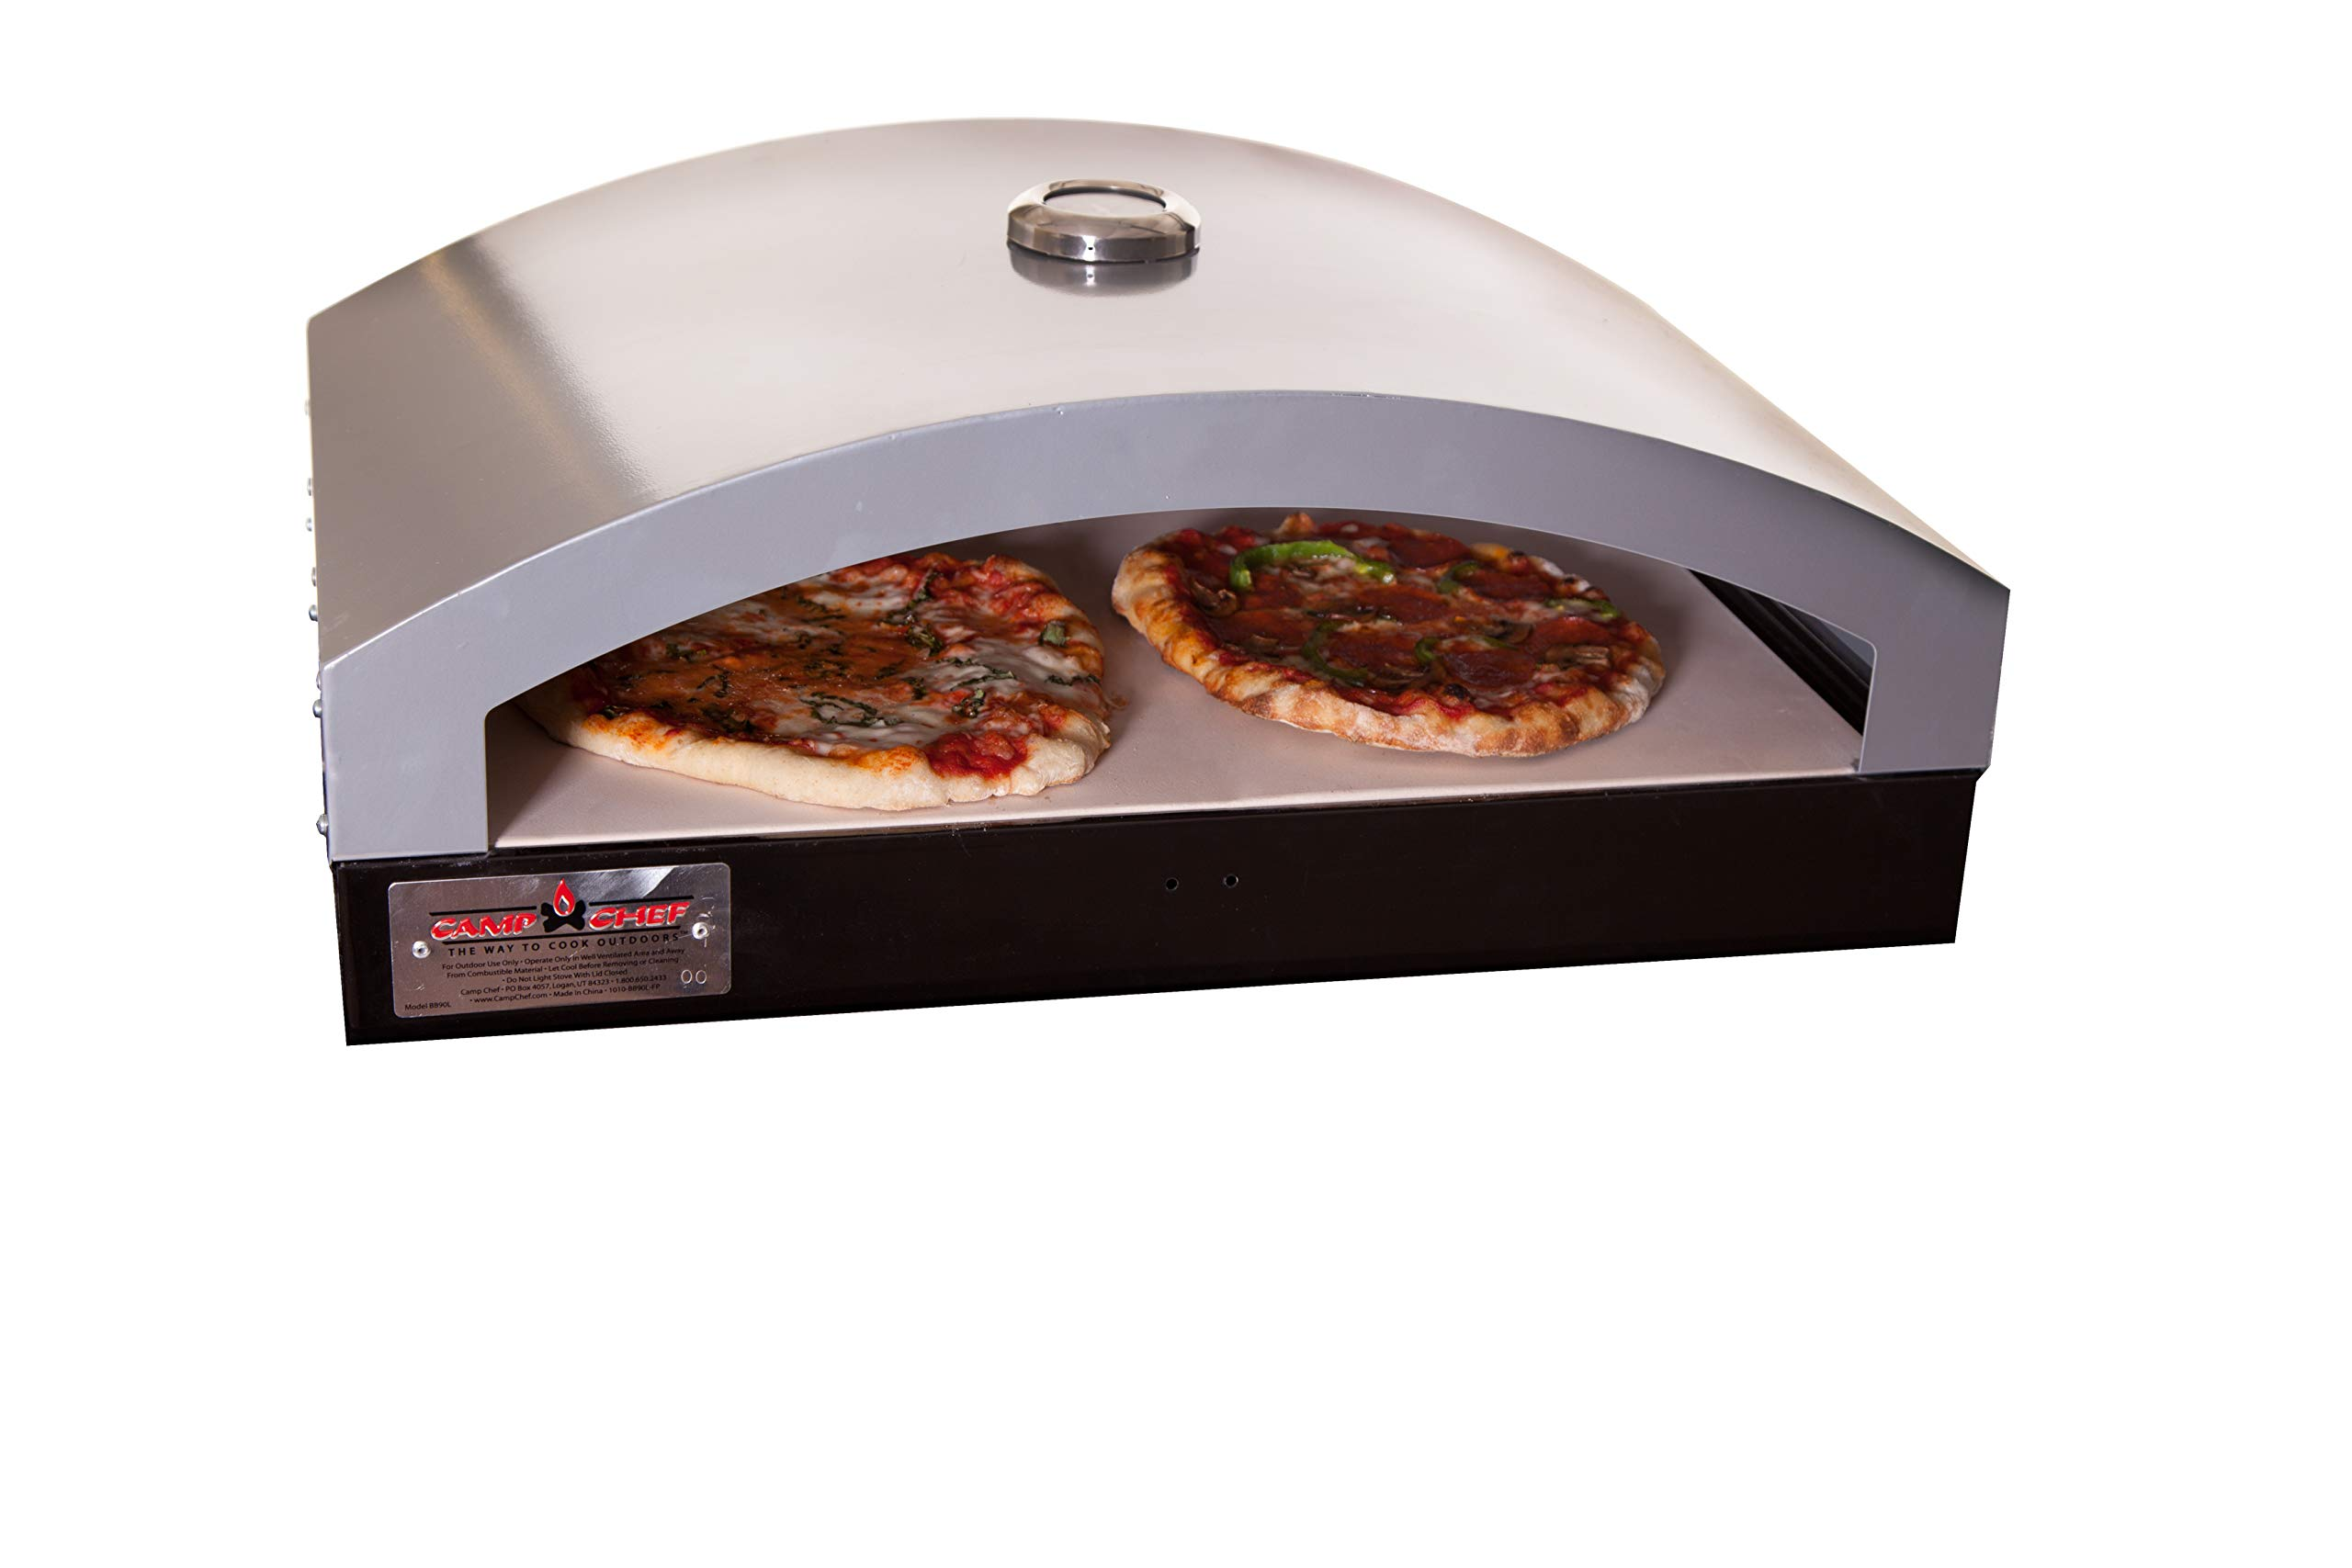 """Camp Chef Artisan Outdoor Pizza Oven, 16"""" Two Burner Accessory, Ceramic Pizza Stone, 16 in. x 24 in. x 9 in"""